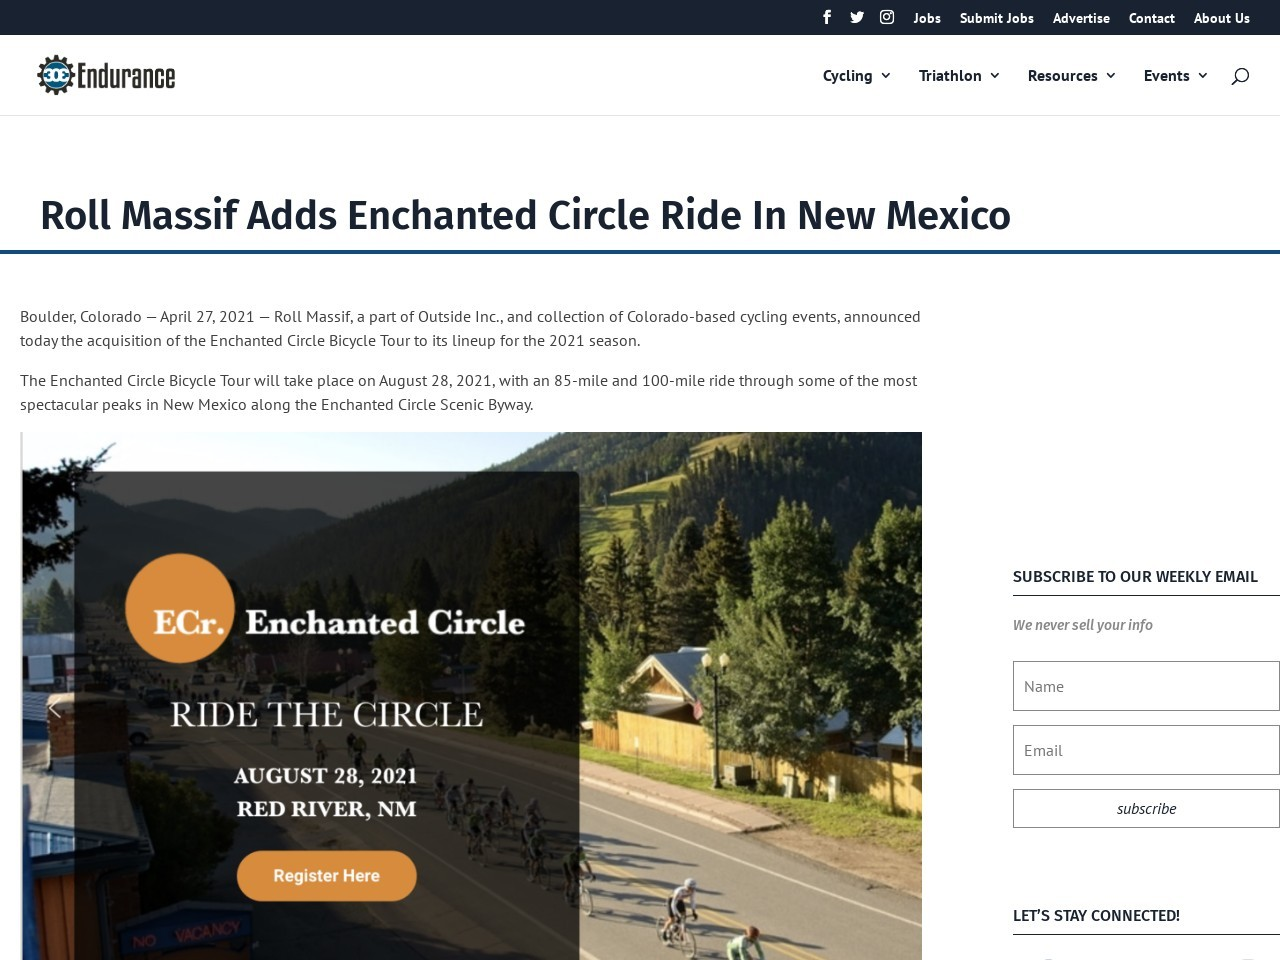 Roll Massif Adds Enchanted Circle Ride In New Mexico